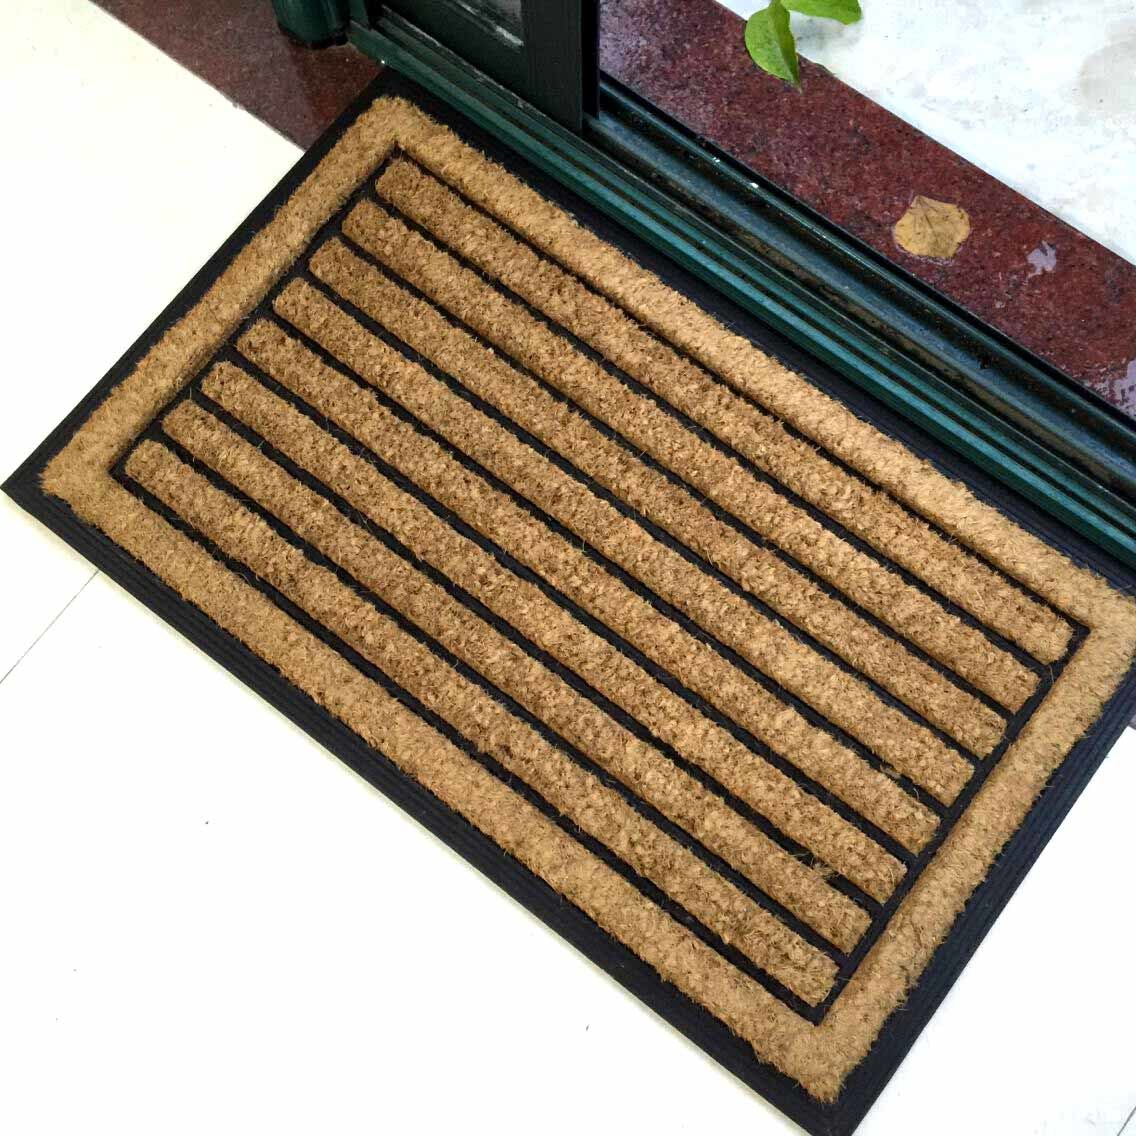 Rubberized Embossed Mouled Brush Rubber Backed Outdoor Coco Coir Coconut Fiber Door Mats